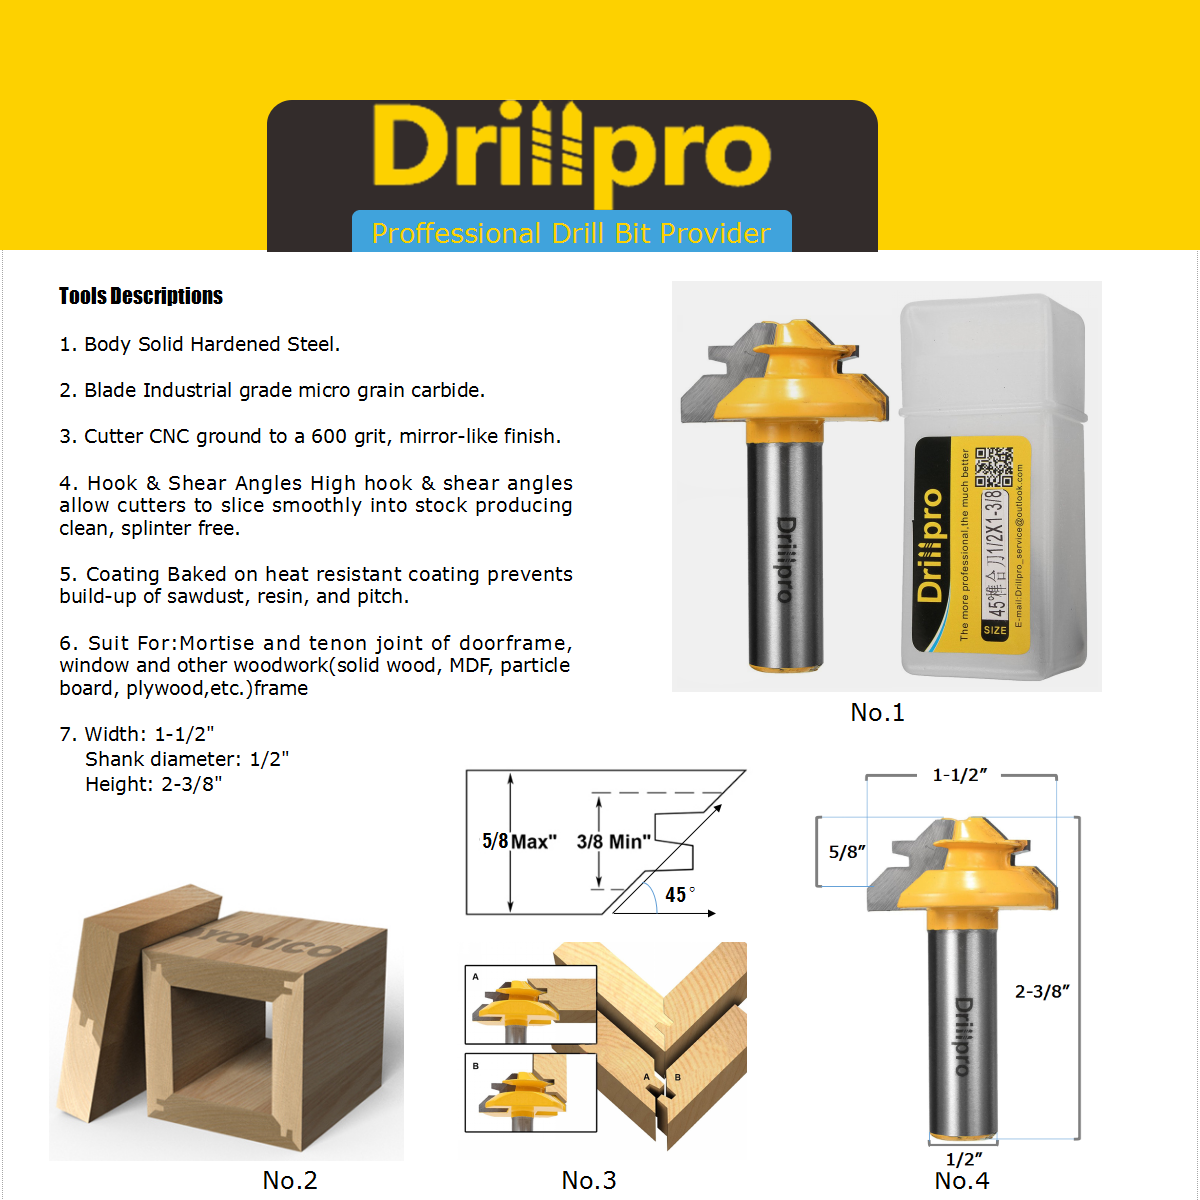 drillpro router bit product discription